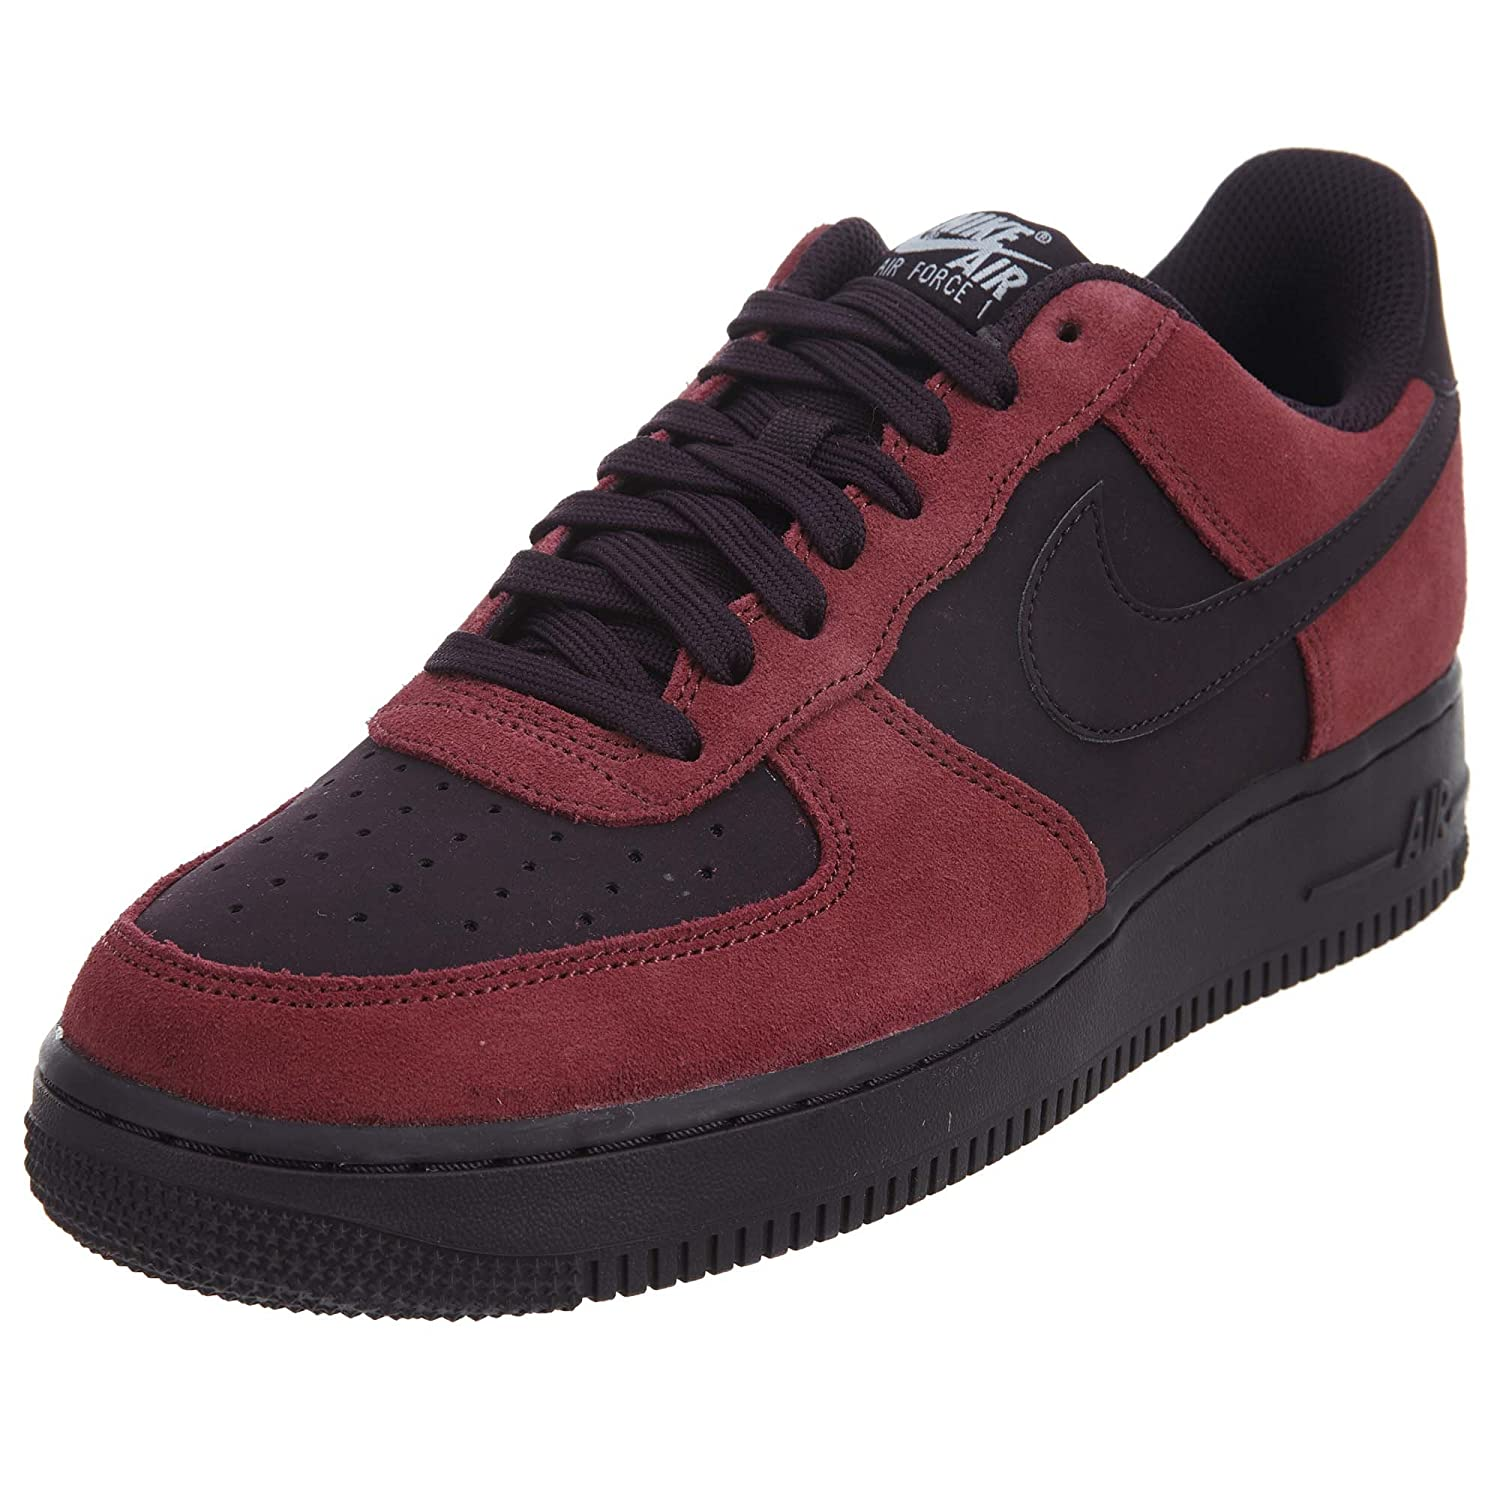 entrega gratis Port Wine, blancoo, negro Nike Air Force 1